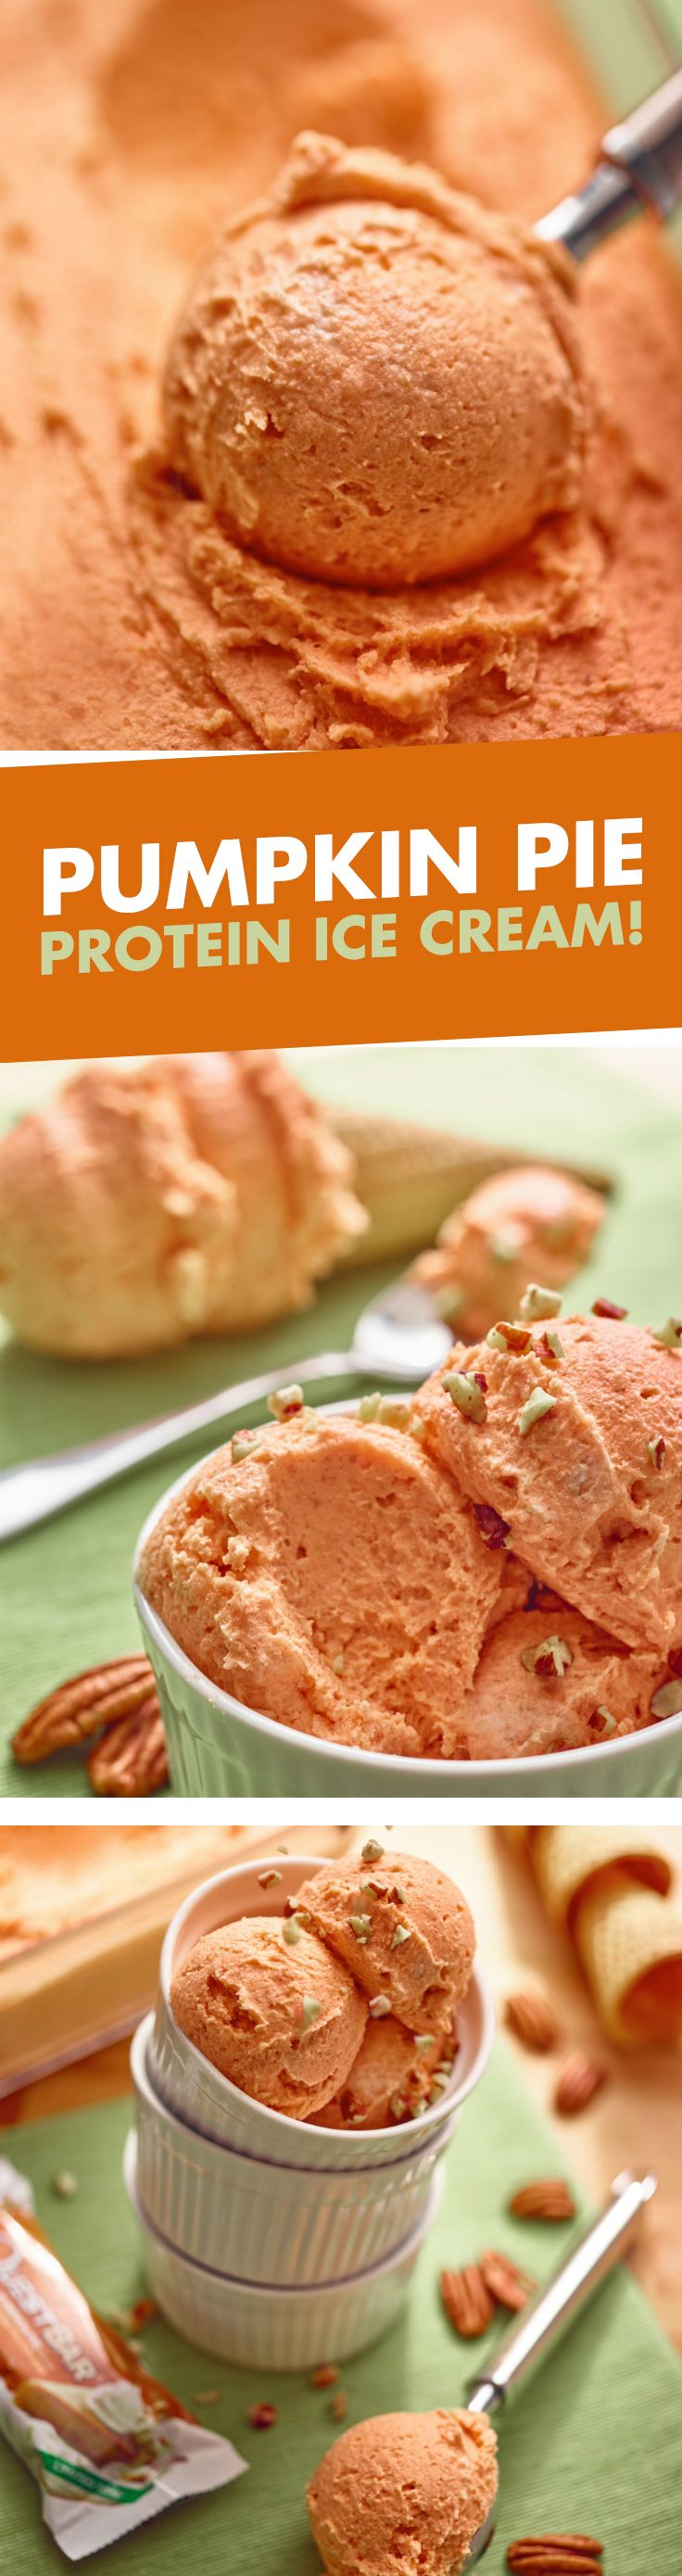 5 words: Pumpkin Pie Protein Ice Cream! Cheers to a deliciously creamy and dreamy dessert.